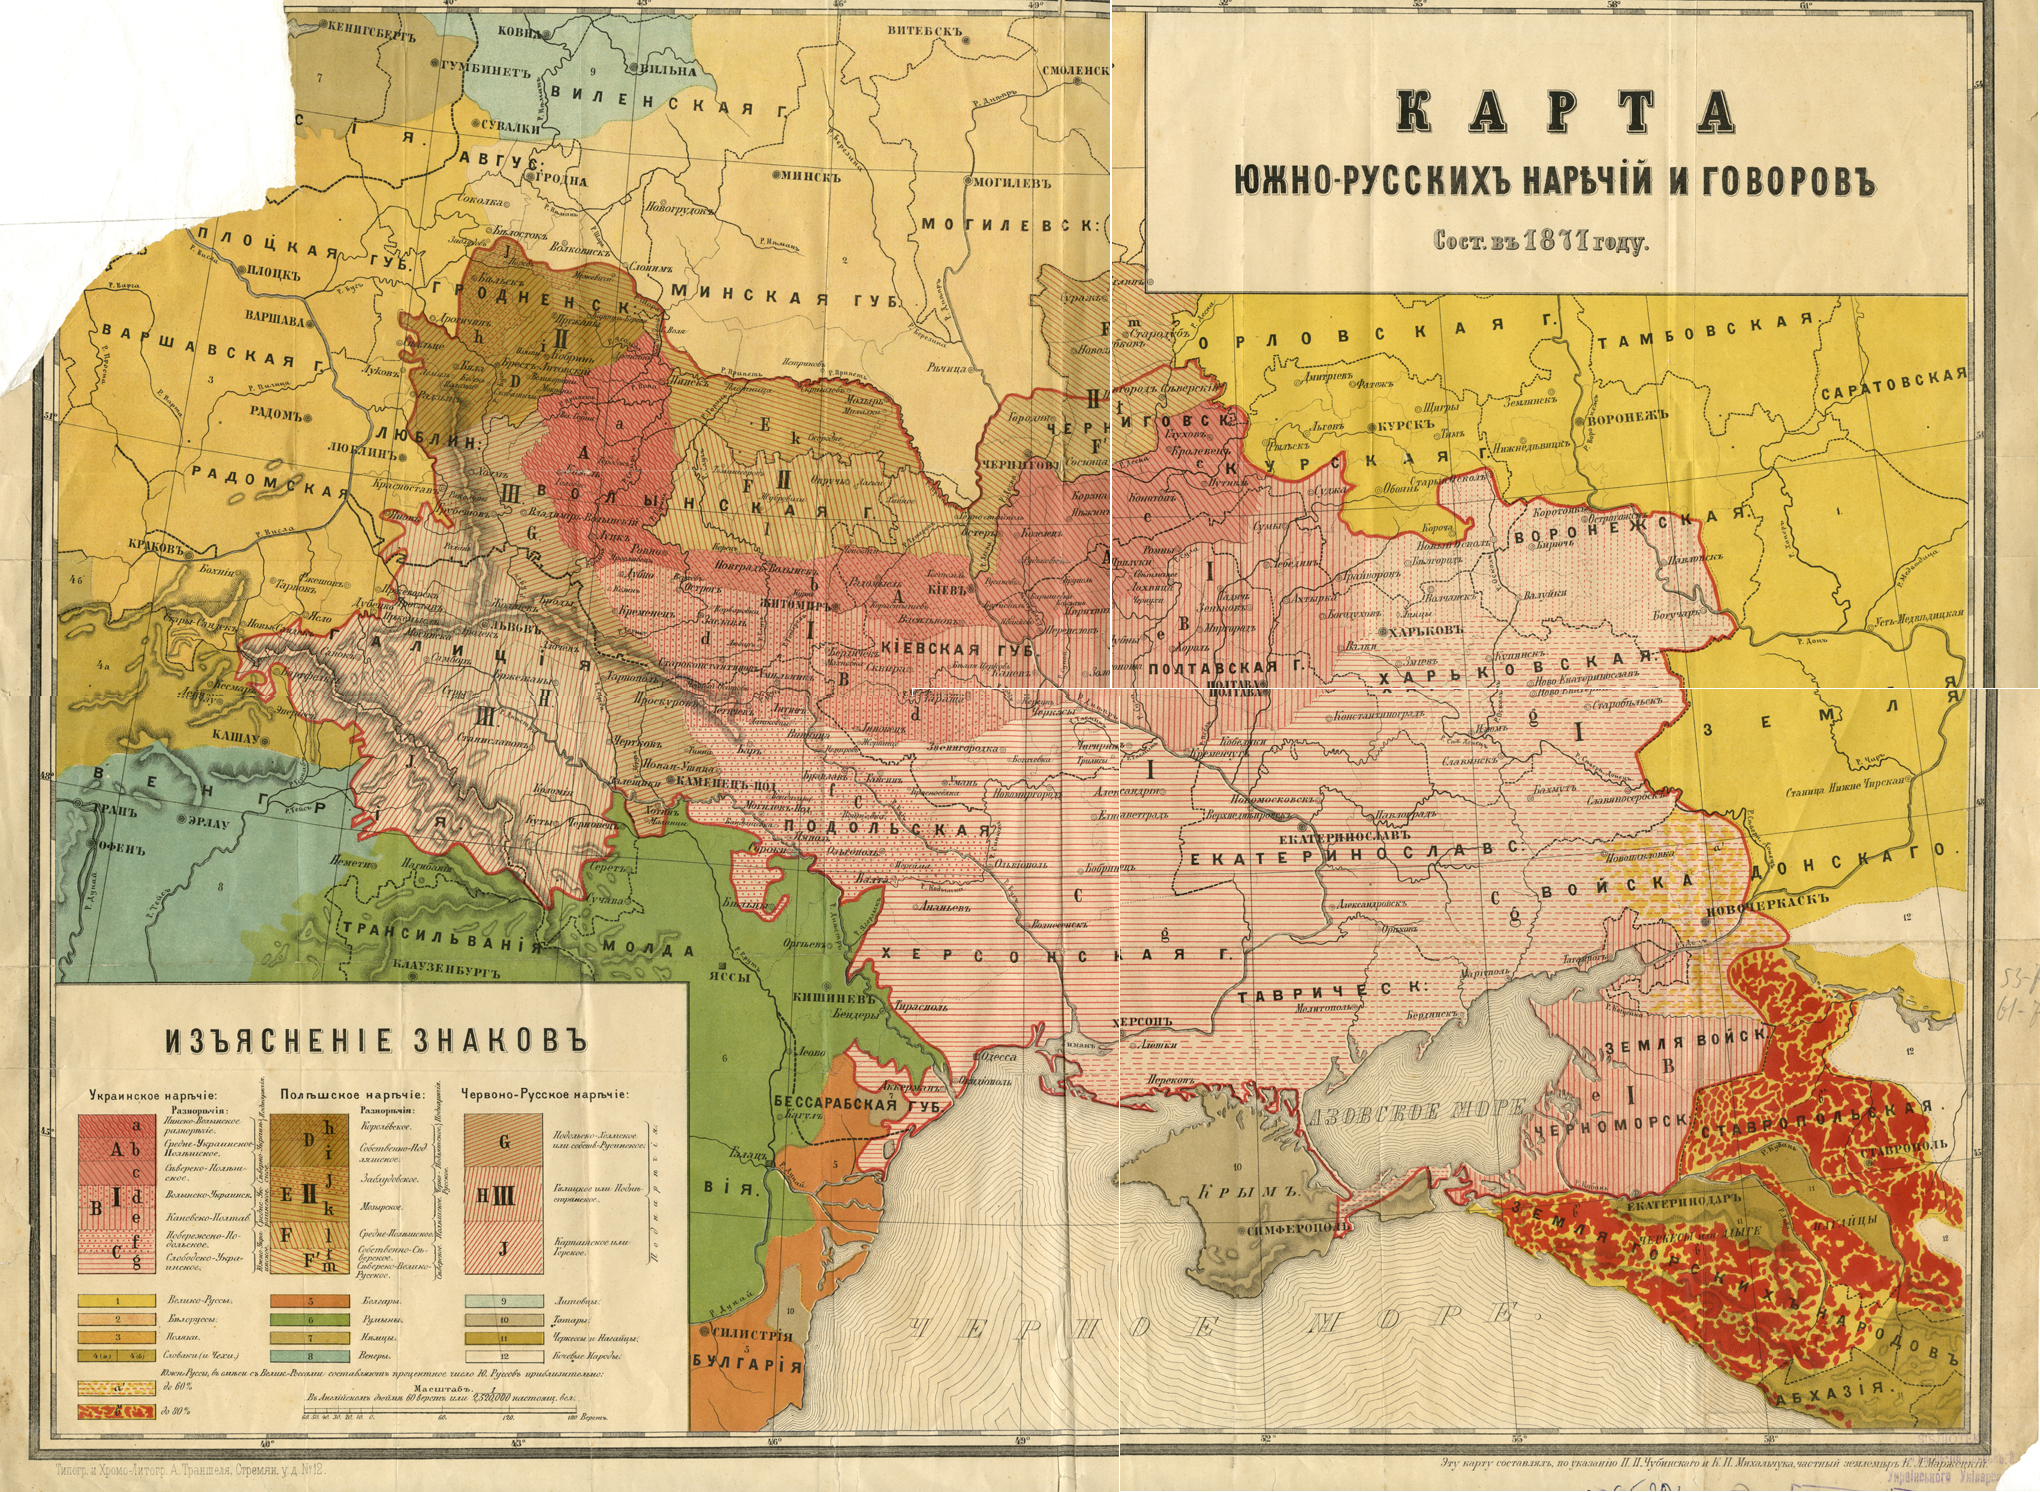 Ukraine Karte 1914.Historical Maps Of Ukraine